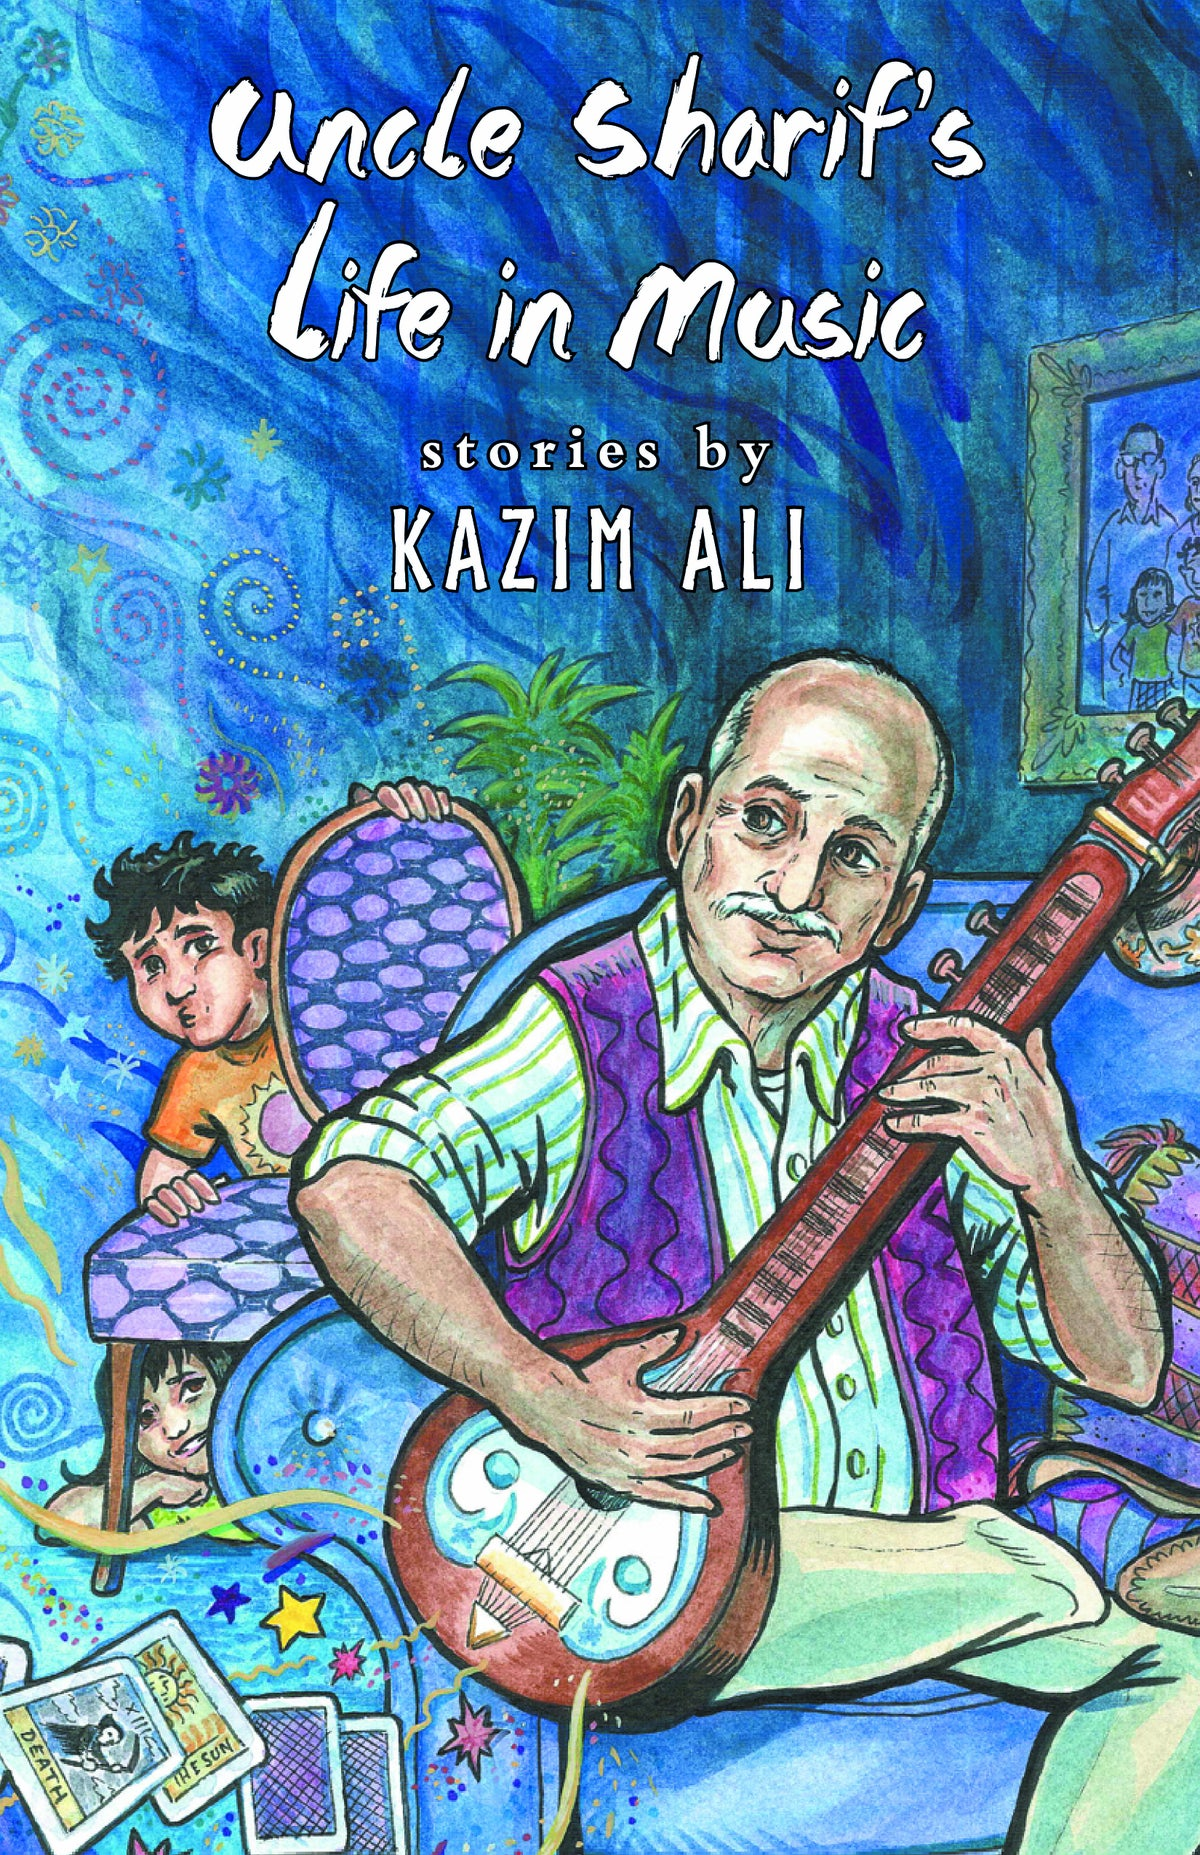 sibling rivalry press uncle sharif s life in music by kazim ali image of uncle sharif s life in music by kazim ali